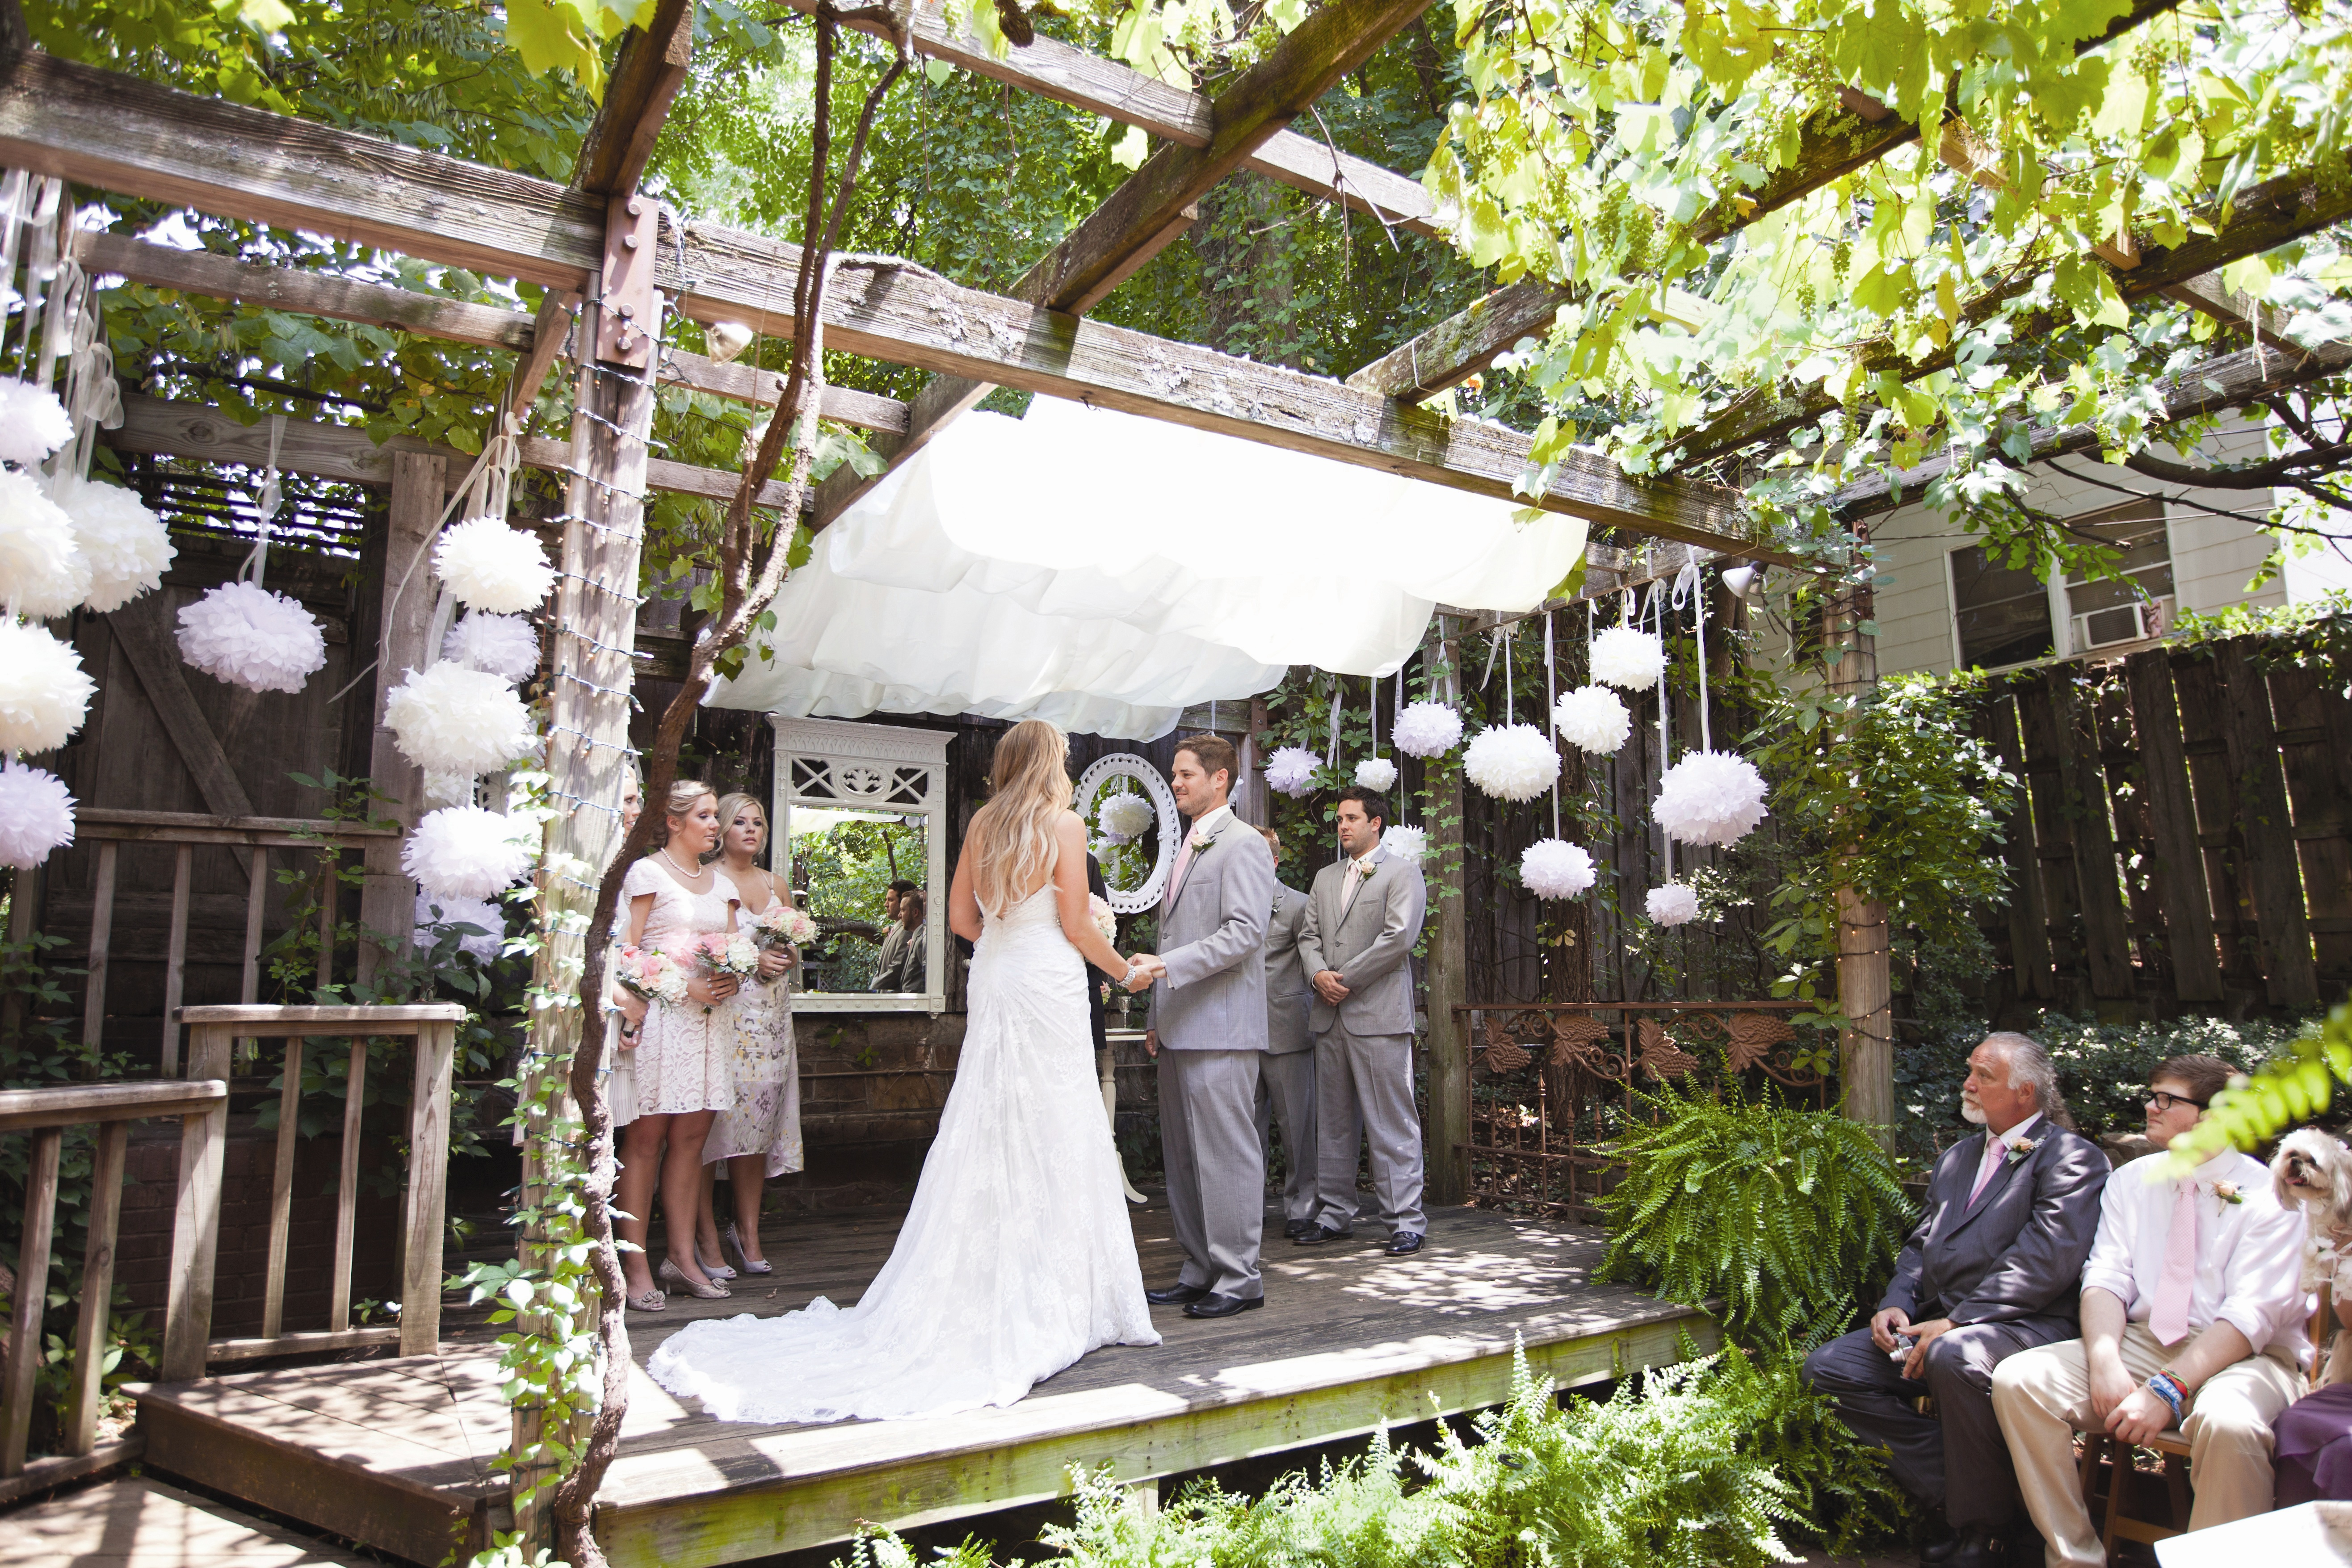 The intimate garden arbor was perfect for a Sunday